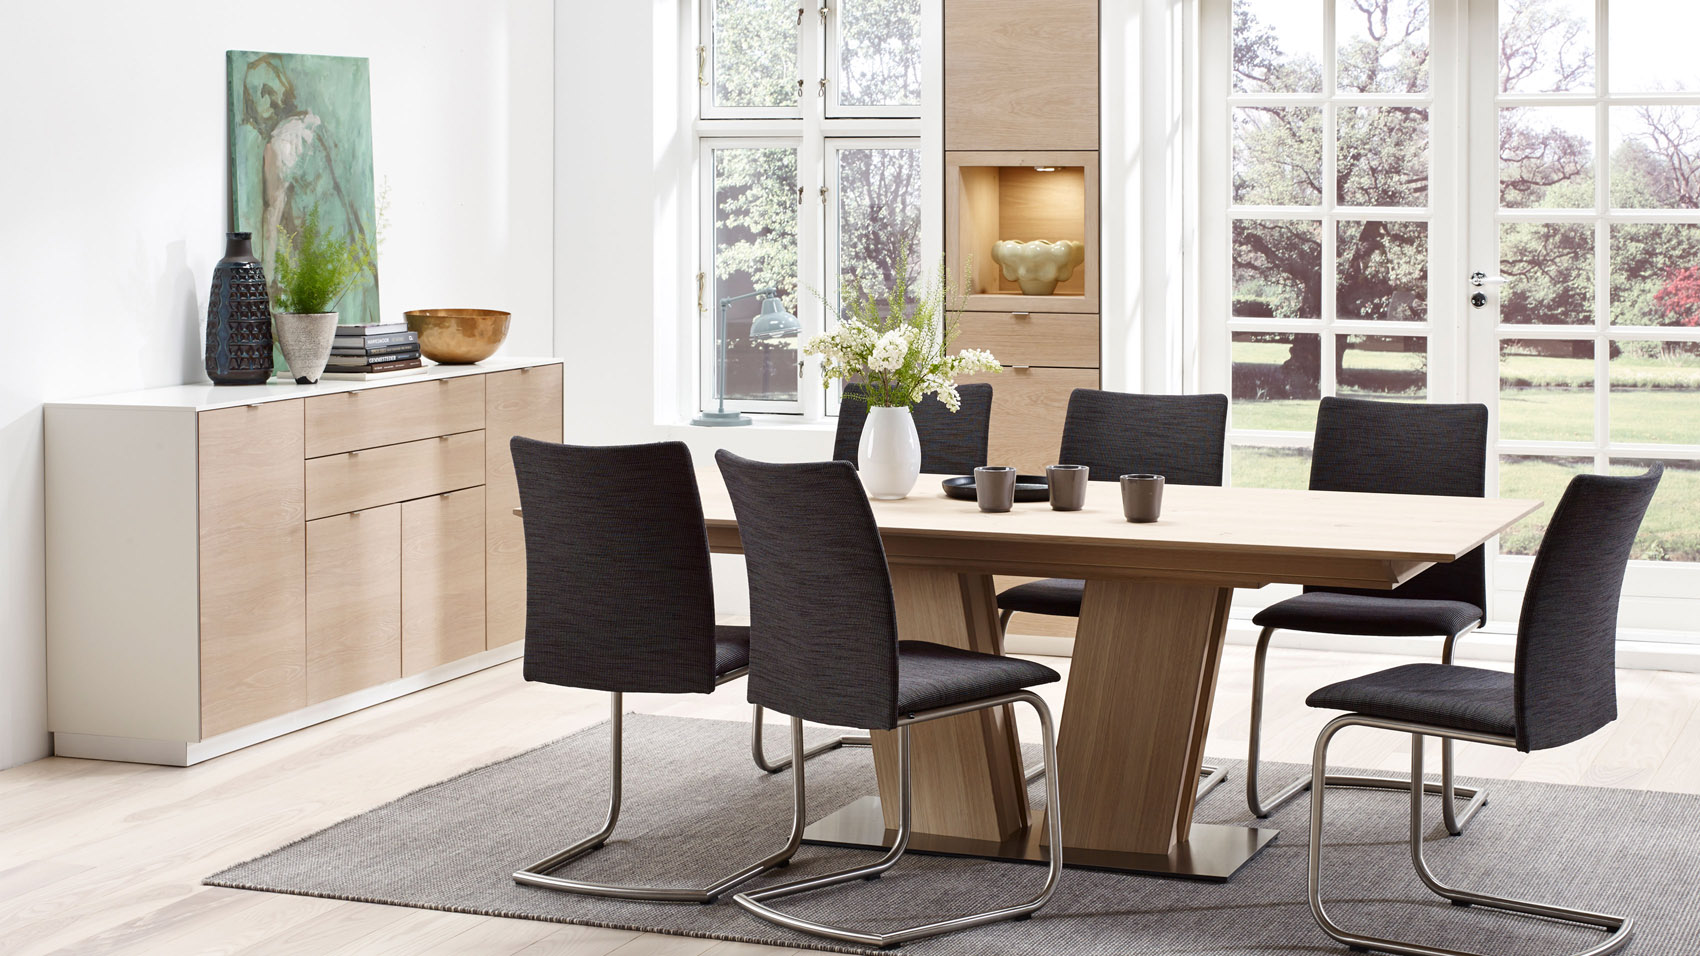 tema  contemporary home magazine - dark grey fabric chairs on metal frames add life to a light open conceptdining